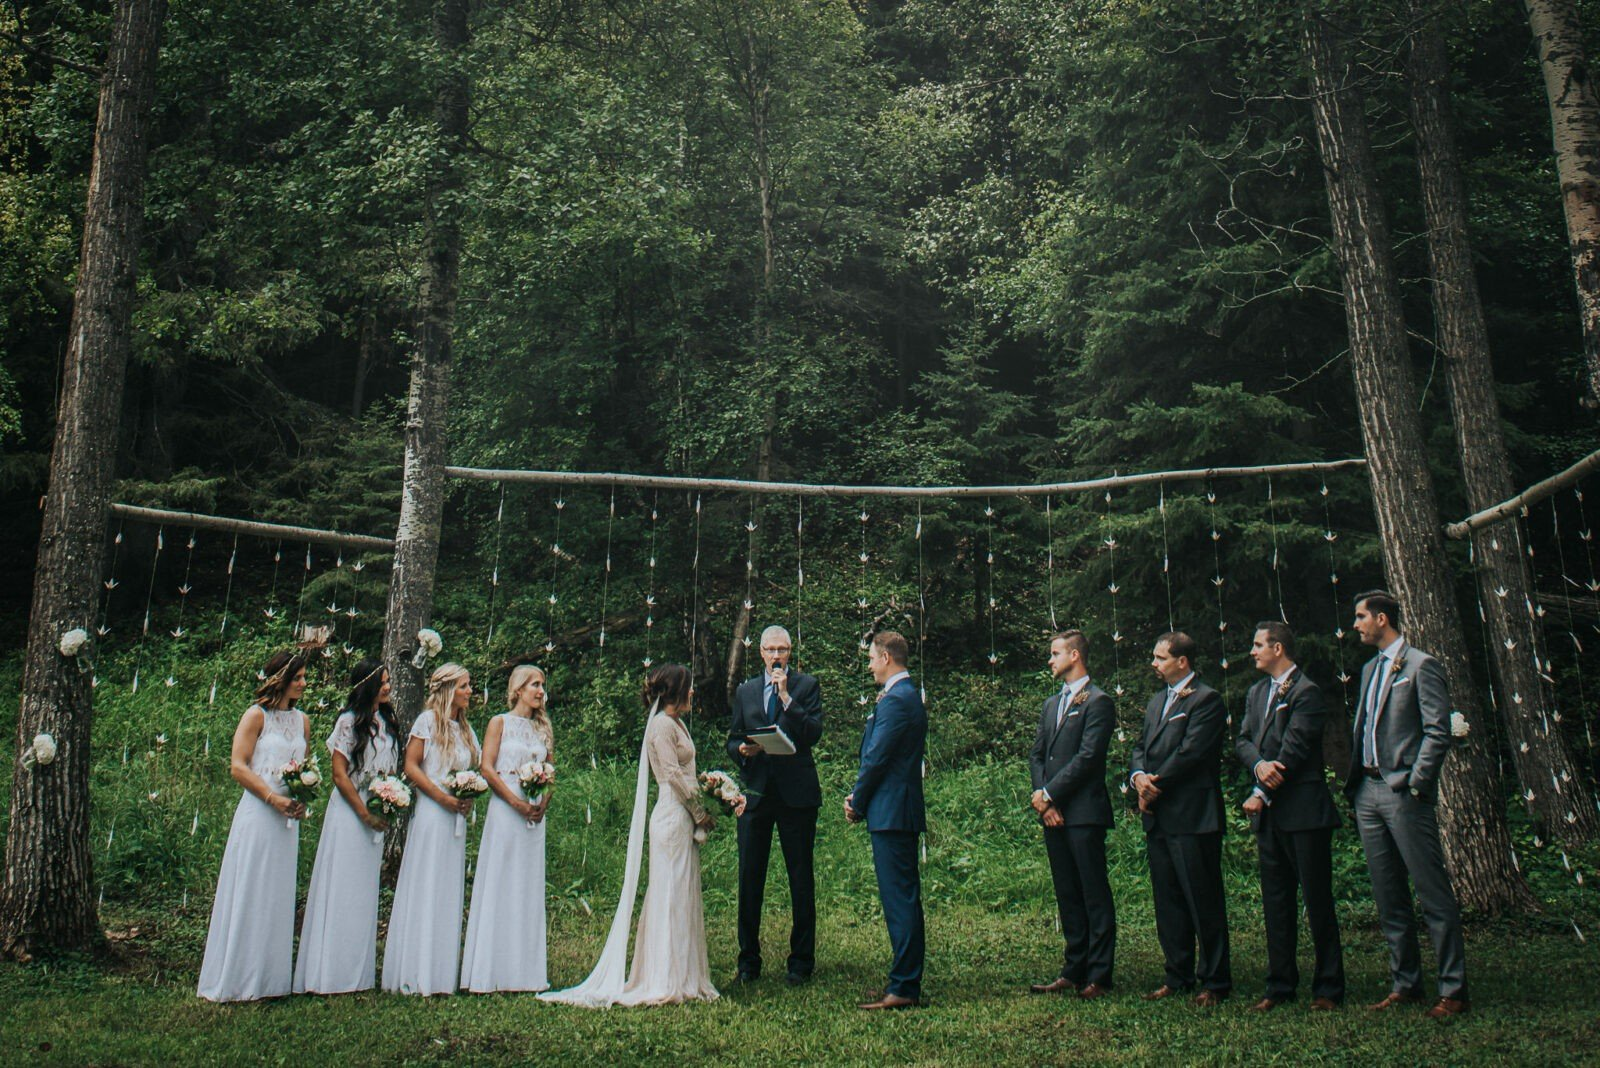 Rain lets up for a beautiful woodland wedding.